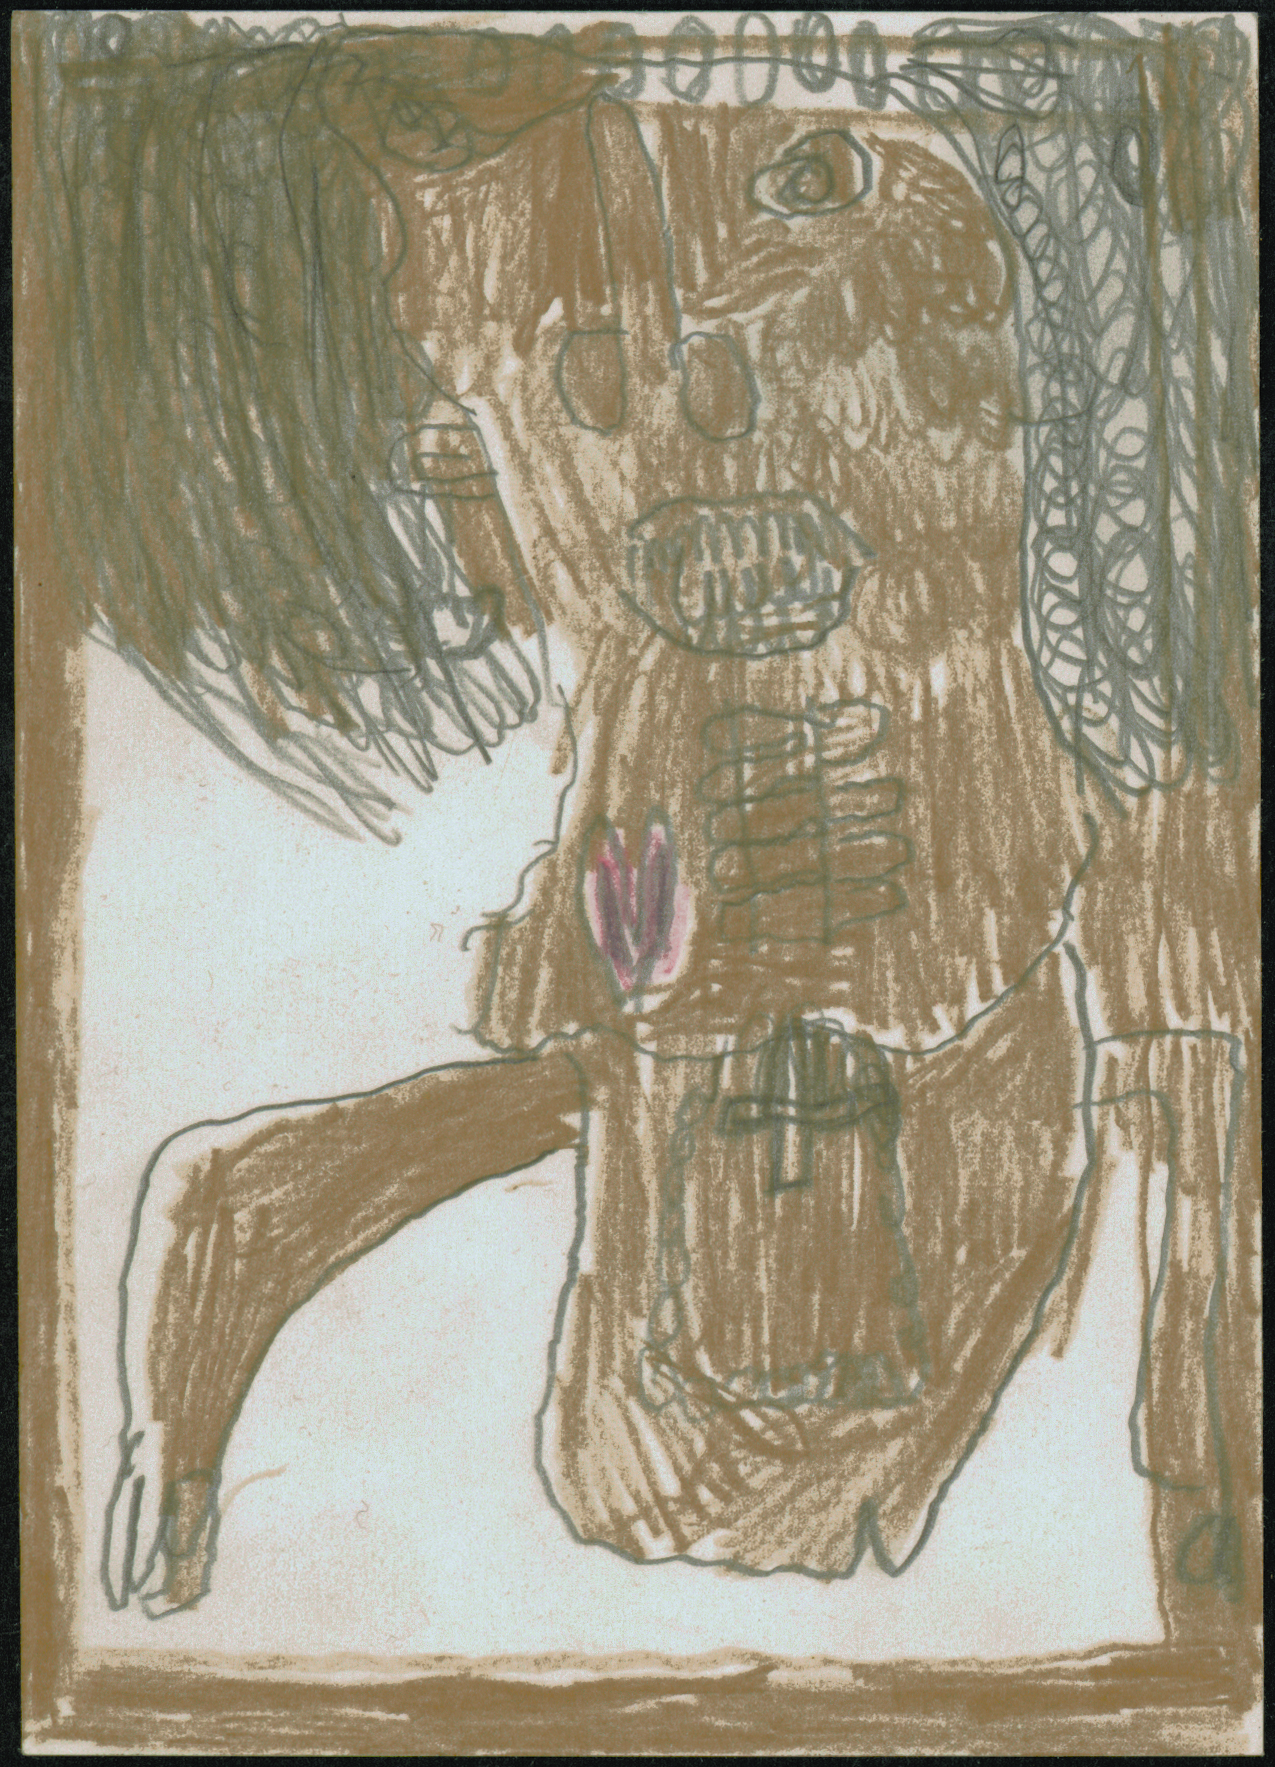 Philipp Schöpke (Austrian, 1921-1998).  Standing Figure with Cross , 1978. Pencil and crayon on paper, 5 ¾ x 4 1/8 in. Intuit: The Center for Intuitive and Outsider Art, gift of John M. MacGregor in honor of Robert A. Roth, 2004.7.8